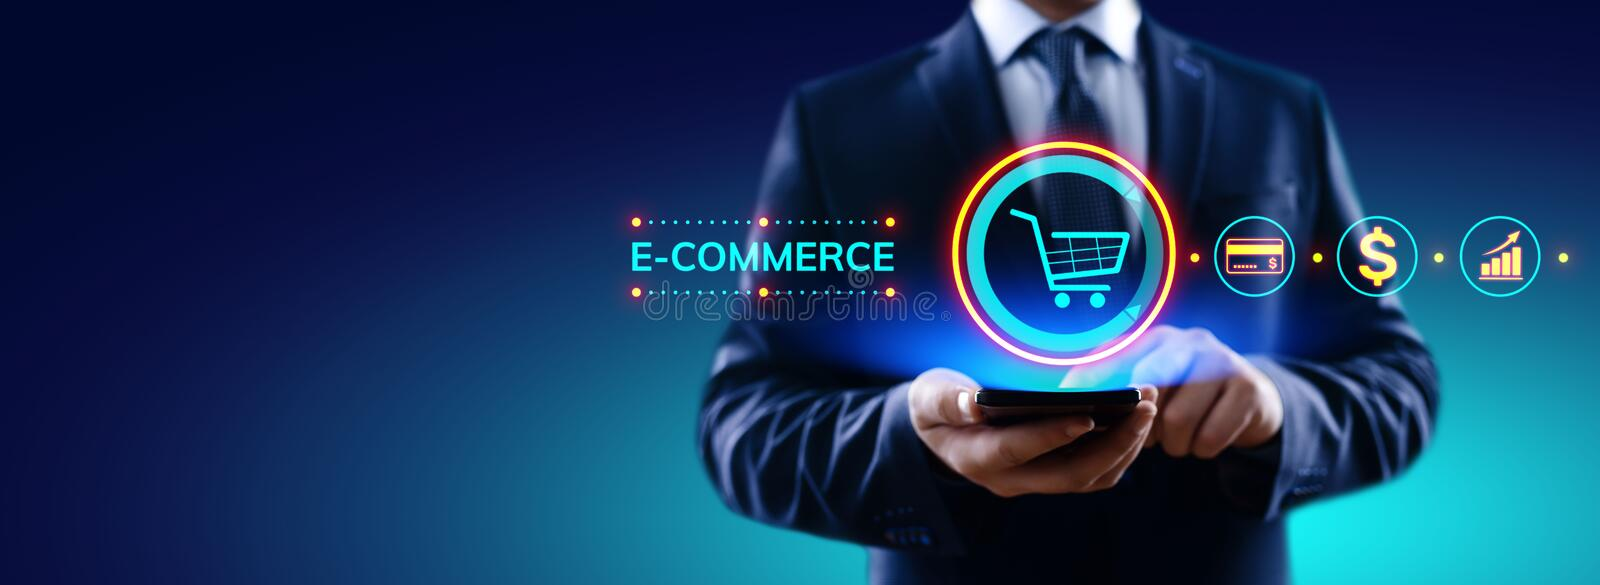 E-commerce Online Shopping Digital marketing and sales business technology concept. stock image